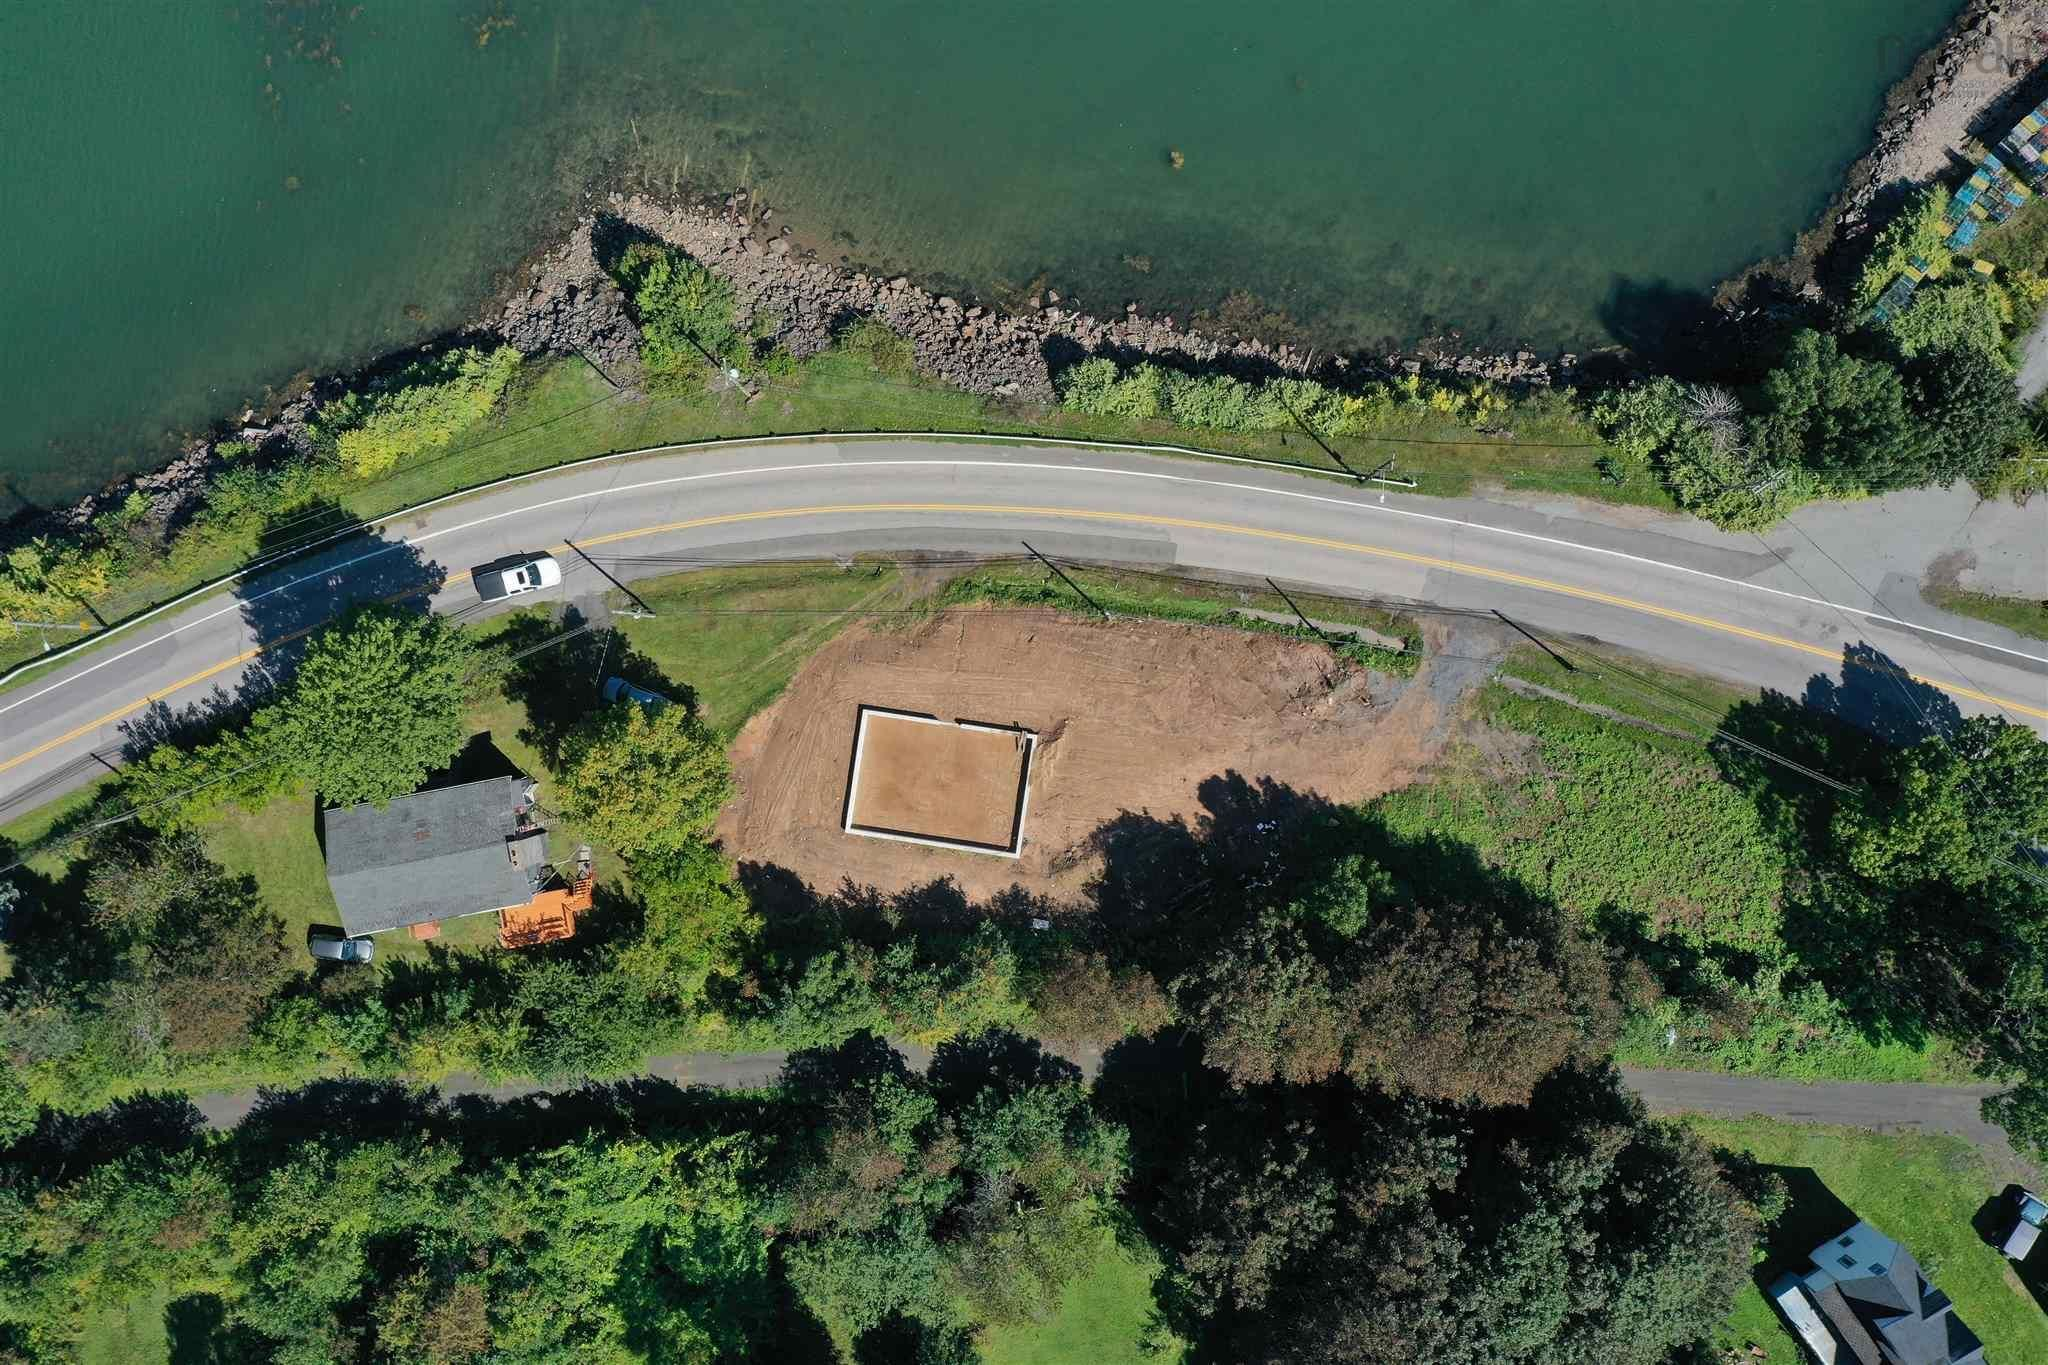 Main Photo: 27 Raquette Road in Digby: 401-Digby County Vacant Land for sale (Annapolis Valley)  : MLS®# 202123293